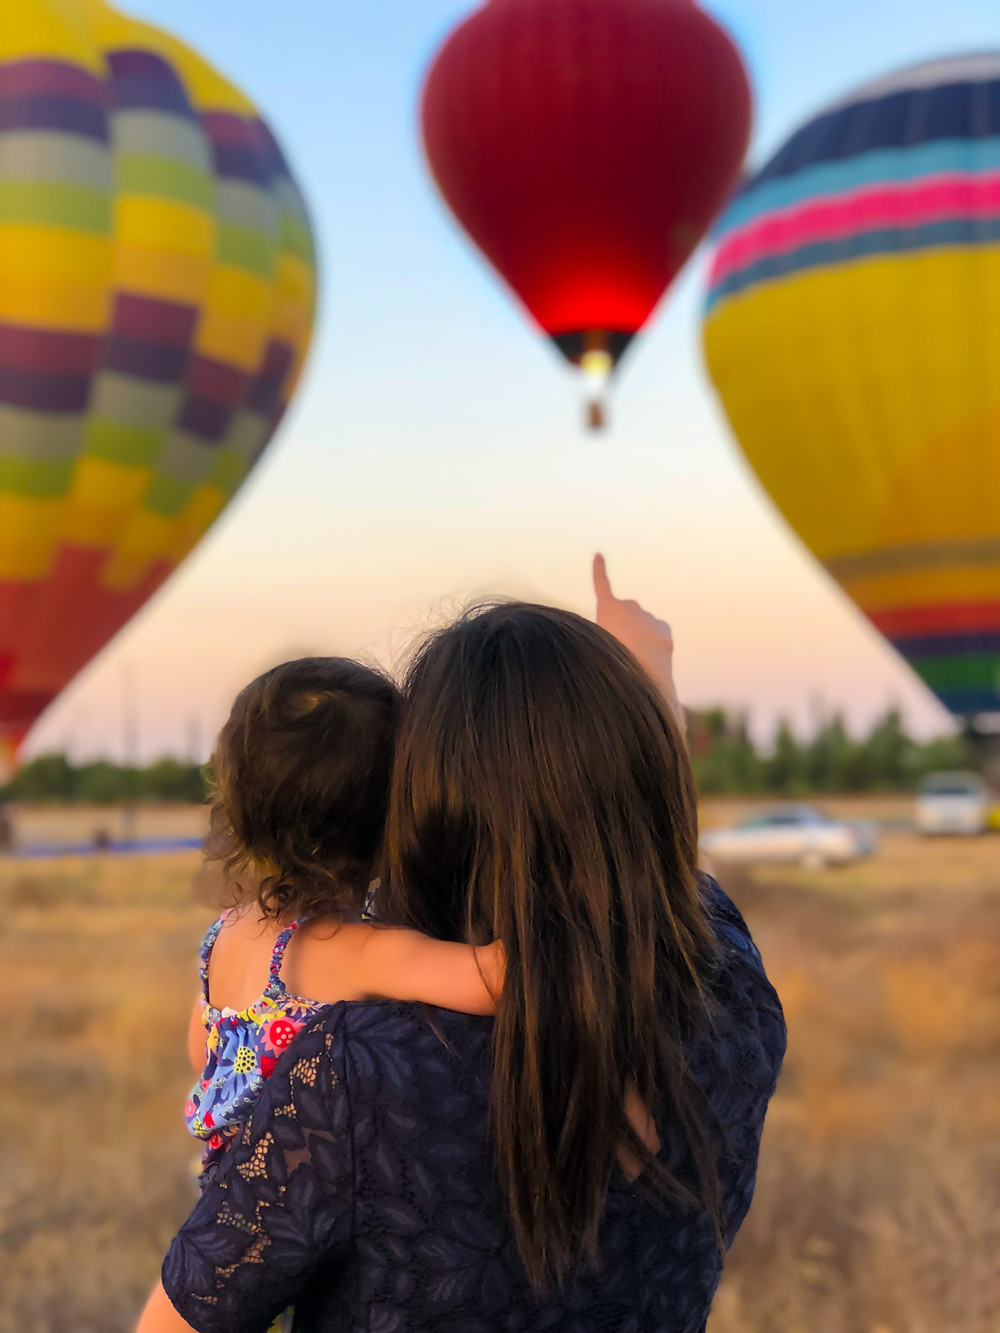 A mother holds her child and watches hot air balloons.